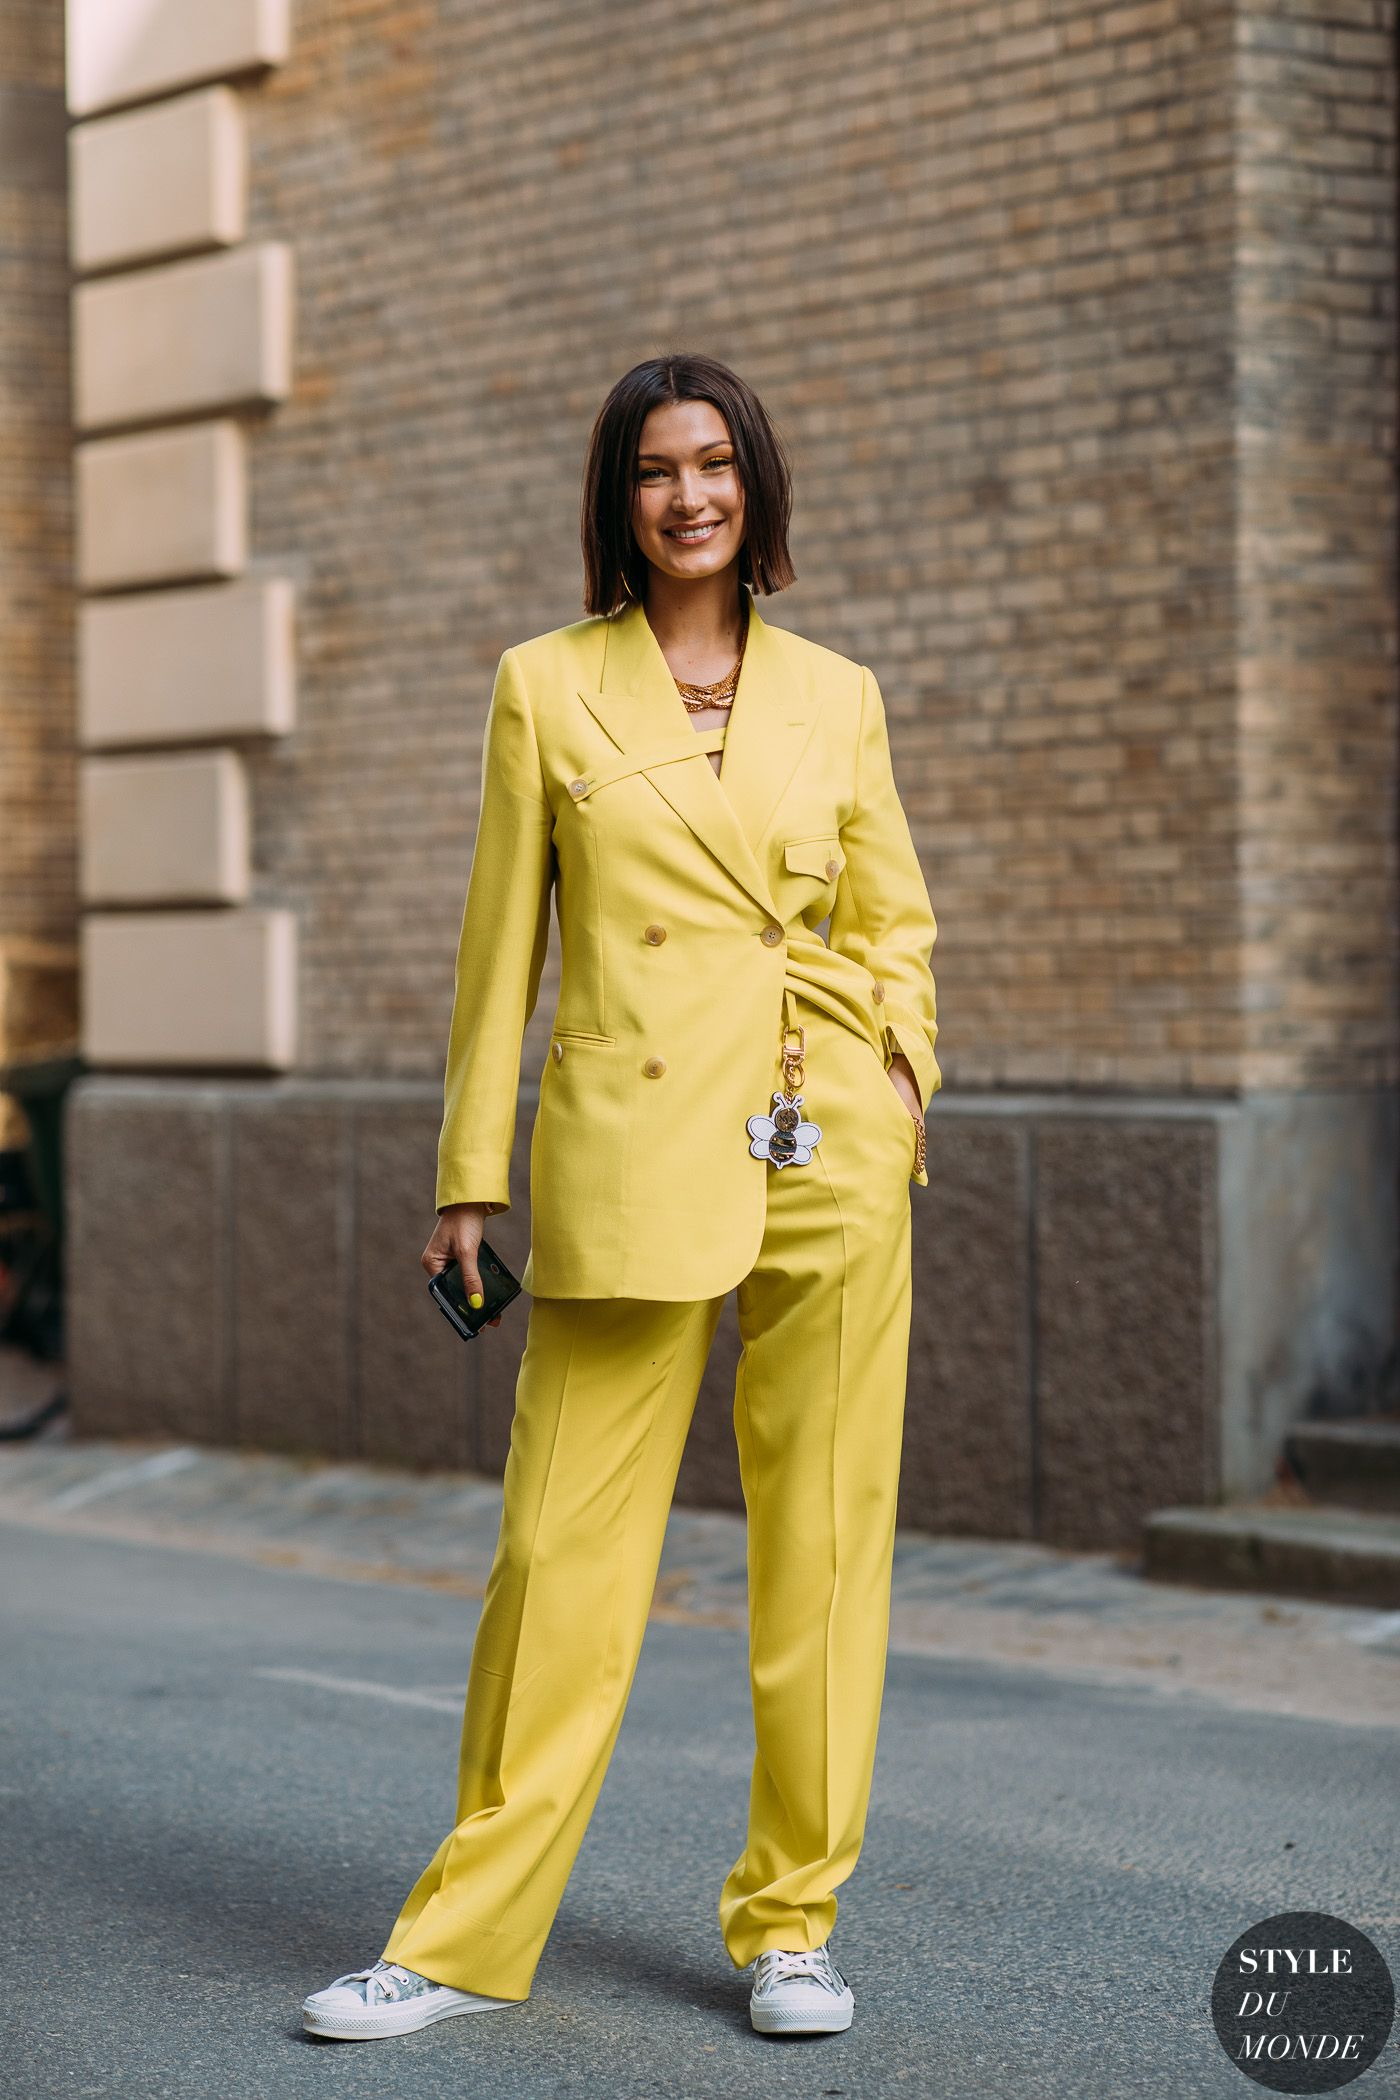 SS 2019 Paris Couture Fashion Week Street Style Inspiration